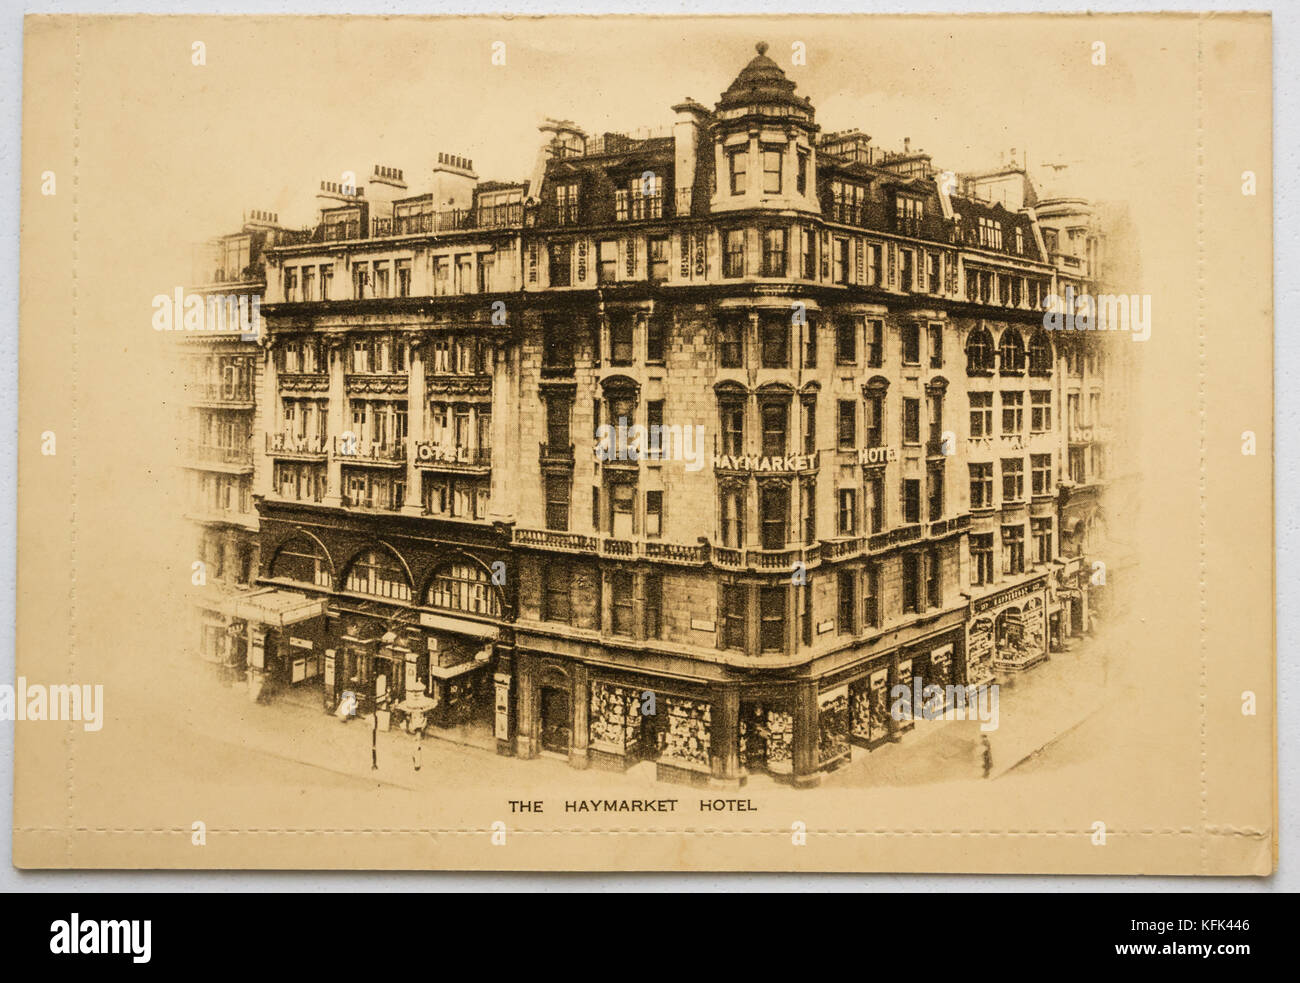 Black And White Postcard From >> Old Monochrome Postcard From The Haymarket Hotel London Corner Of